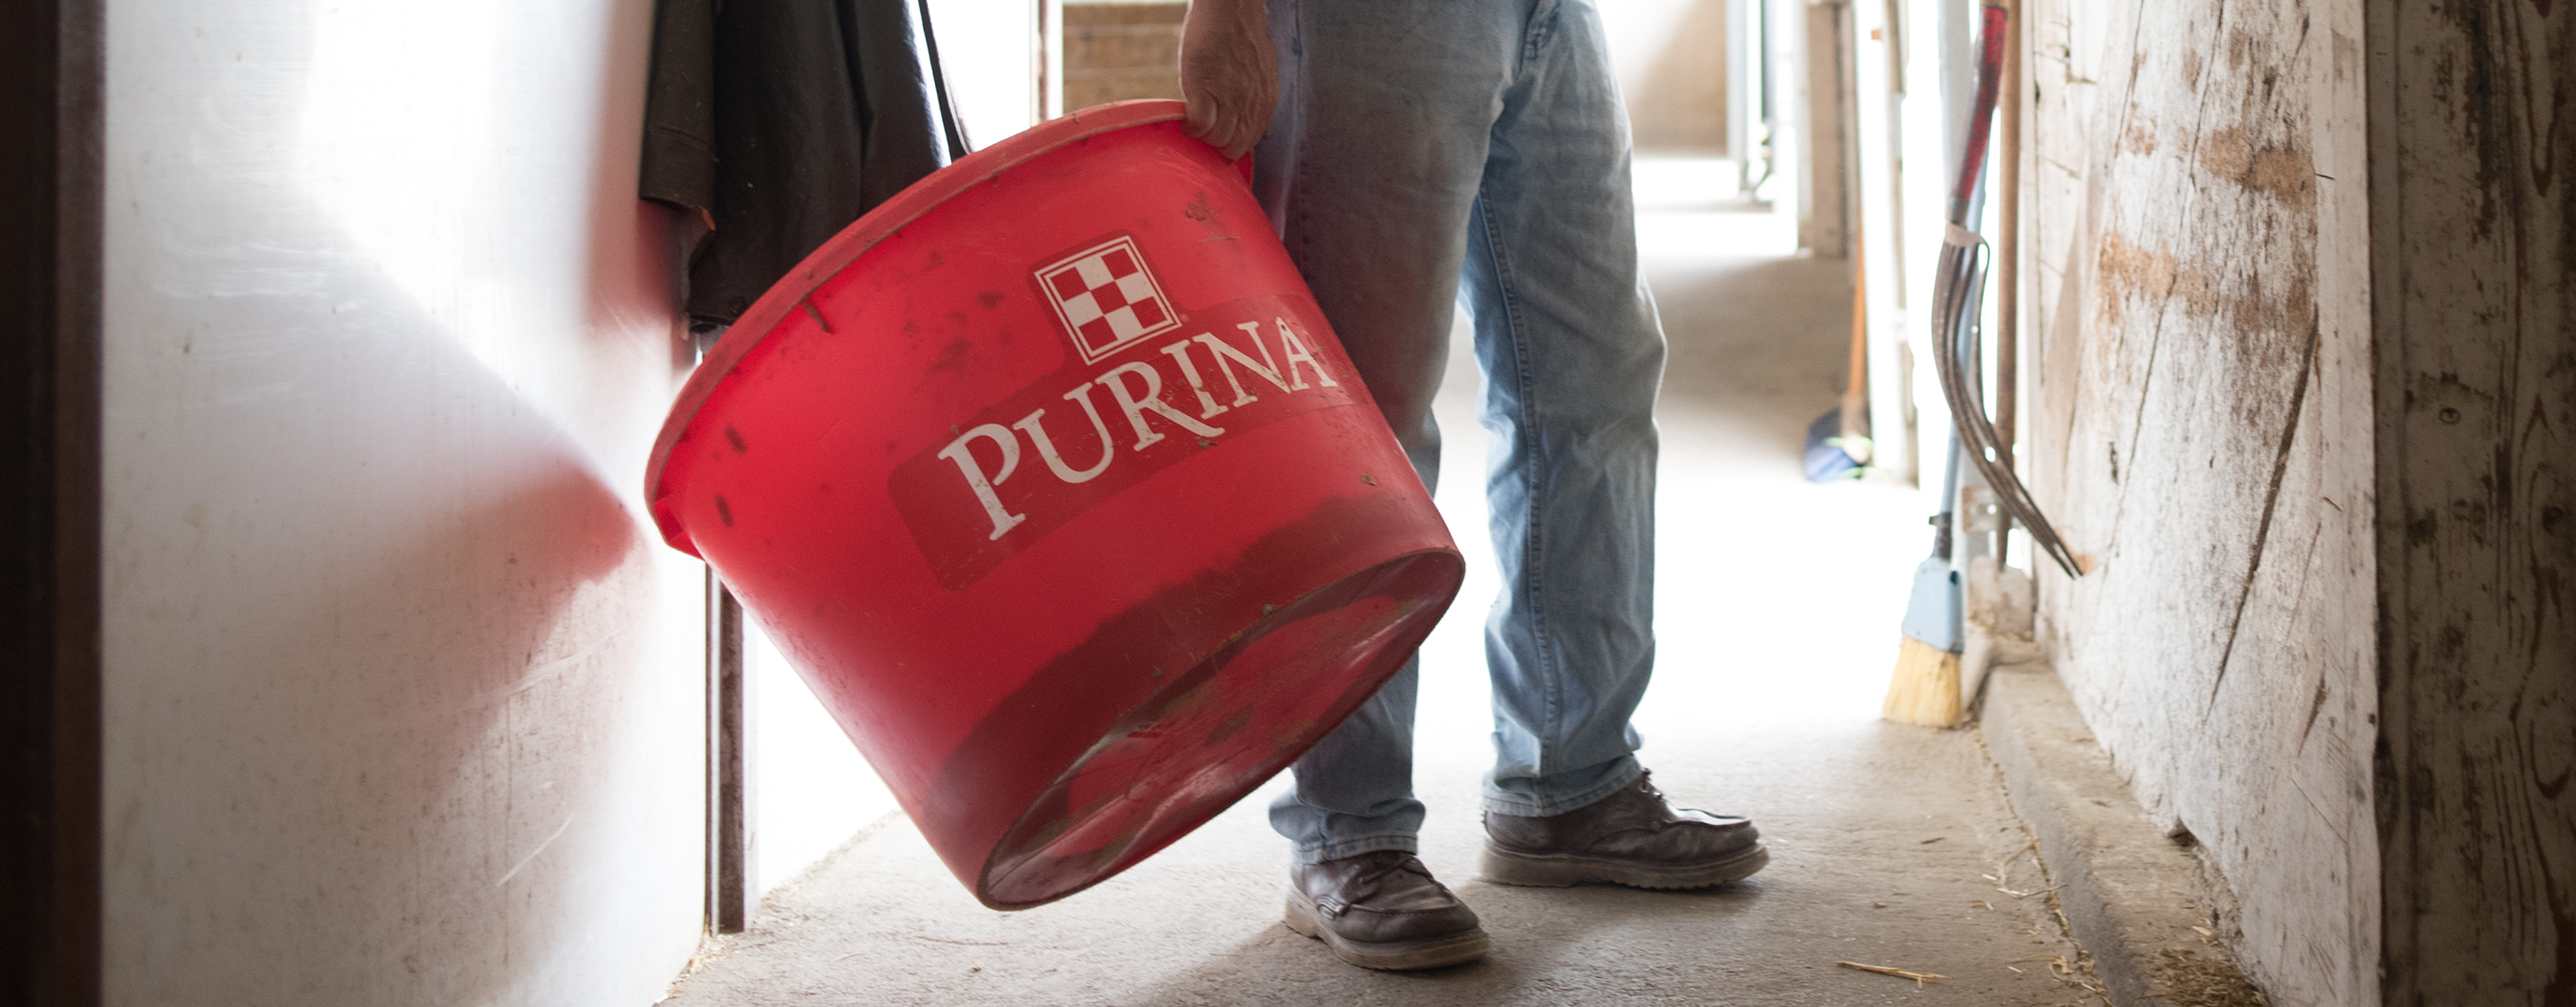 A Purina Feed Tub